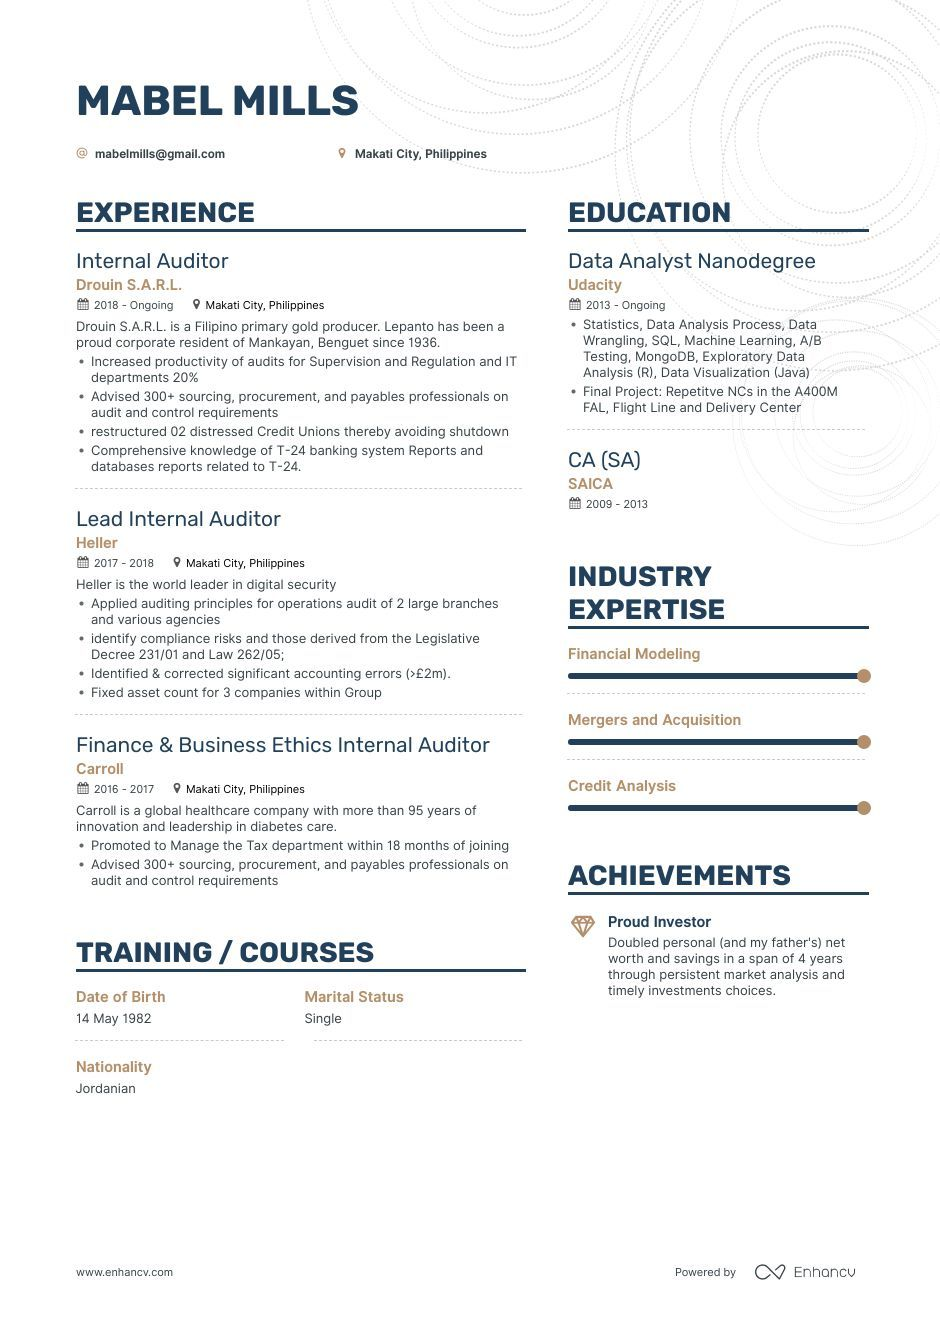 Best Auditor Resume Examples with Objectives, Skills